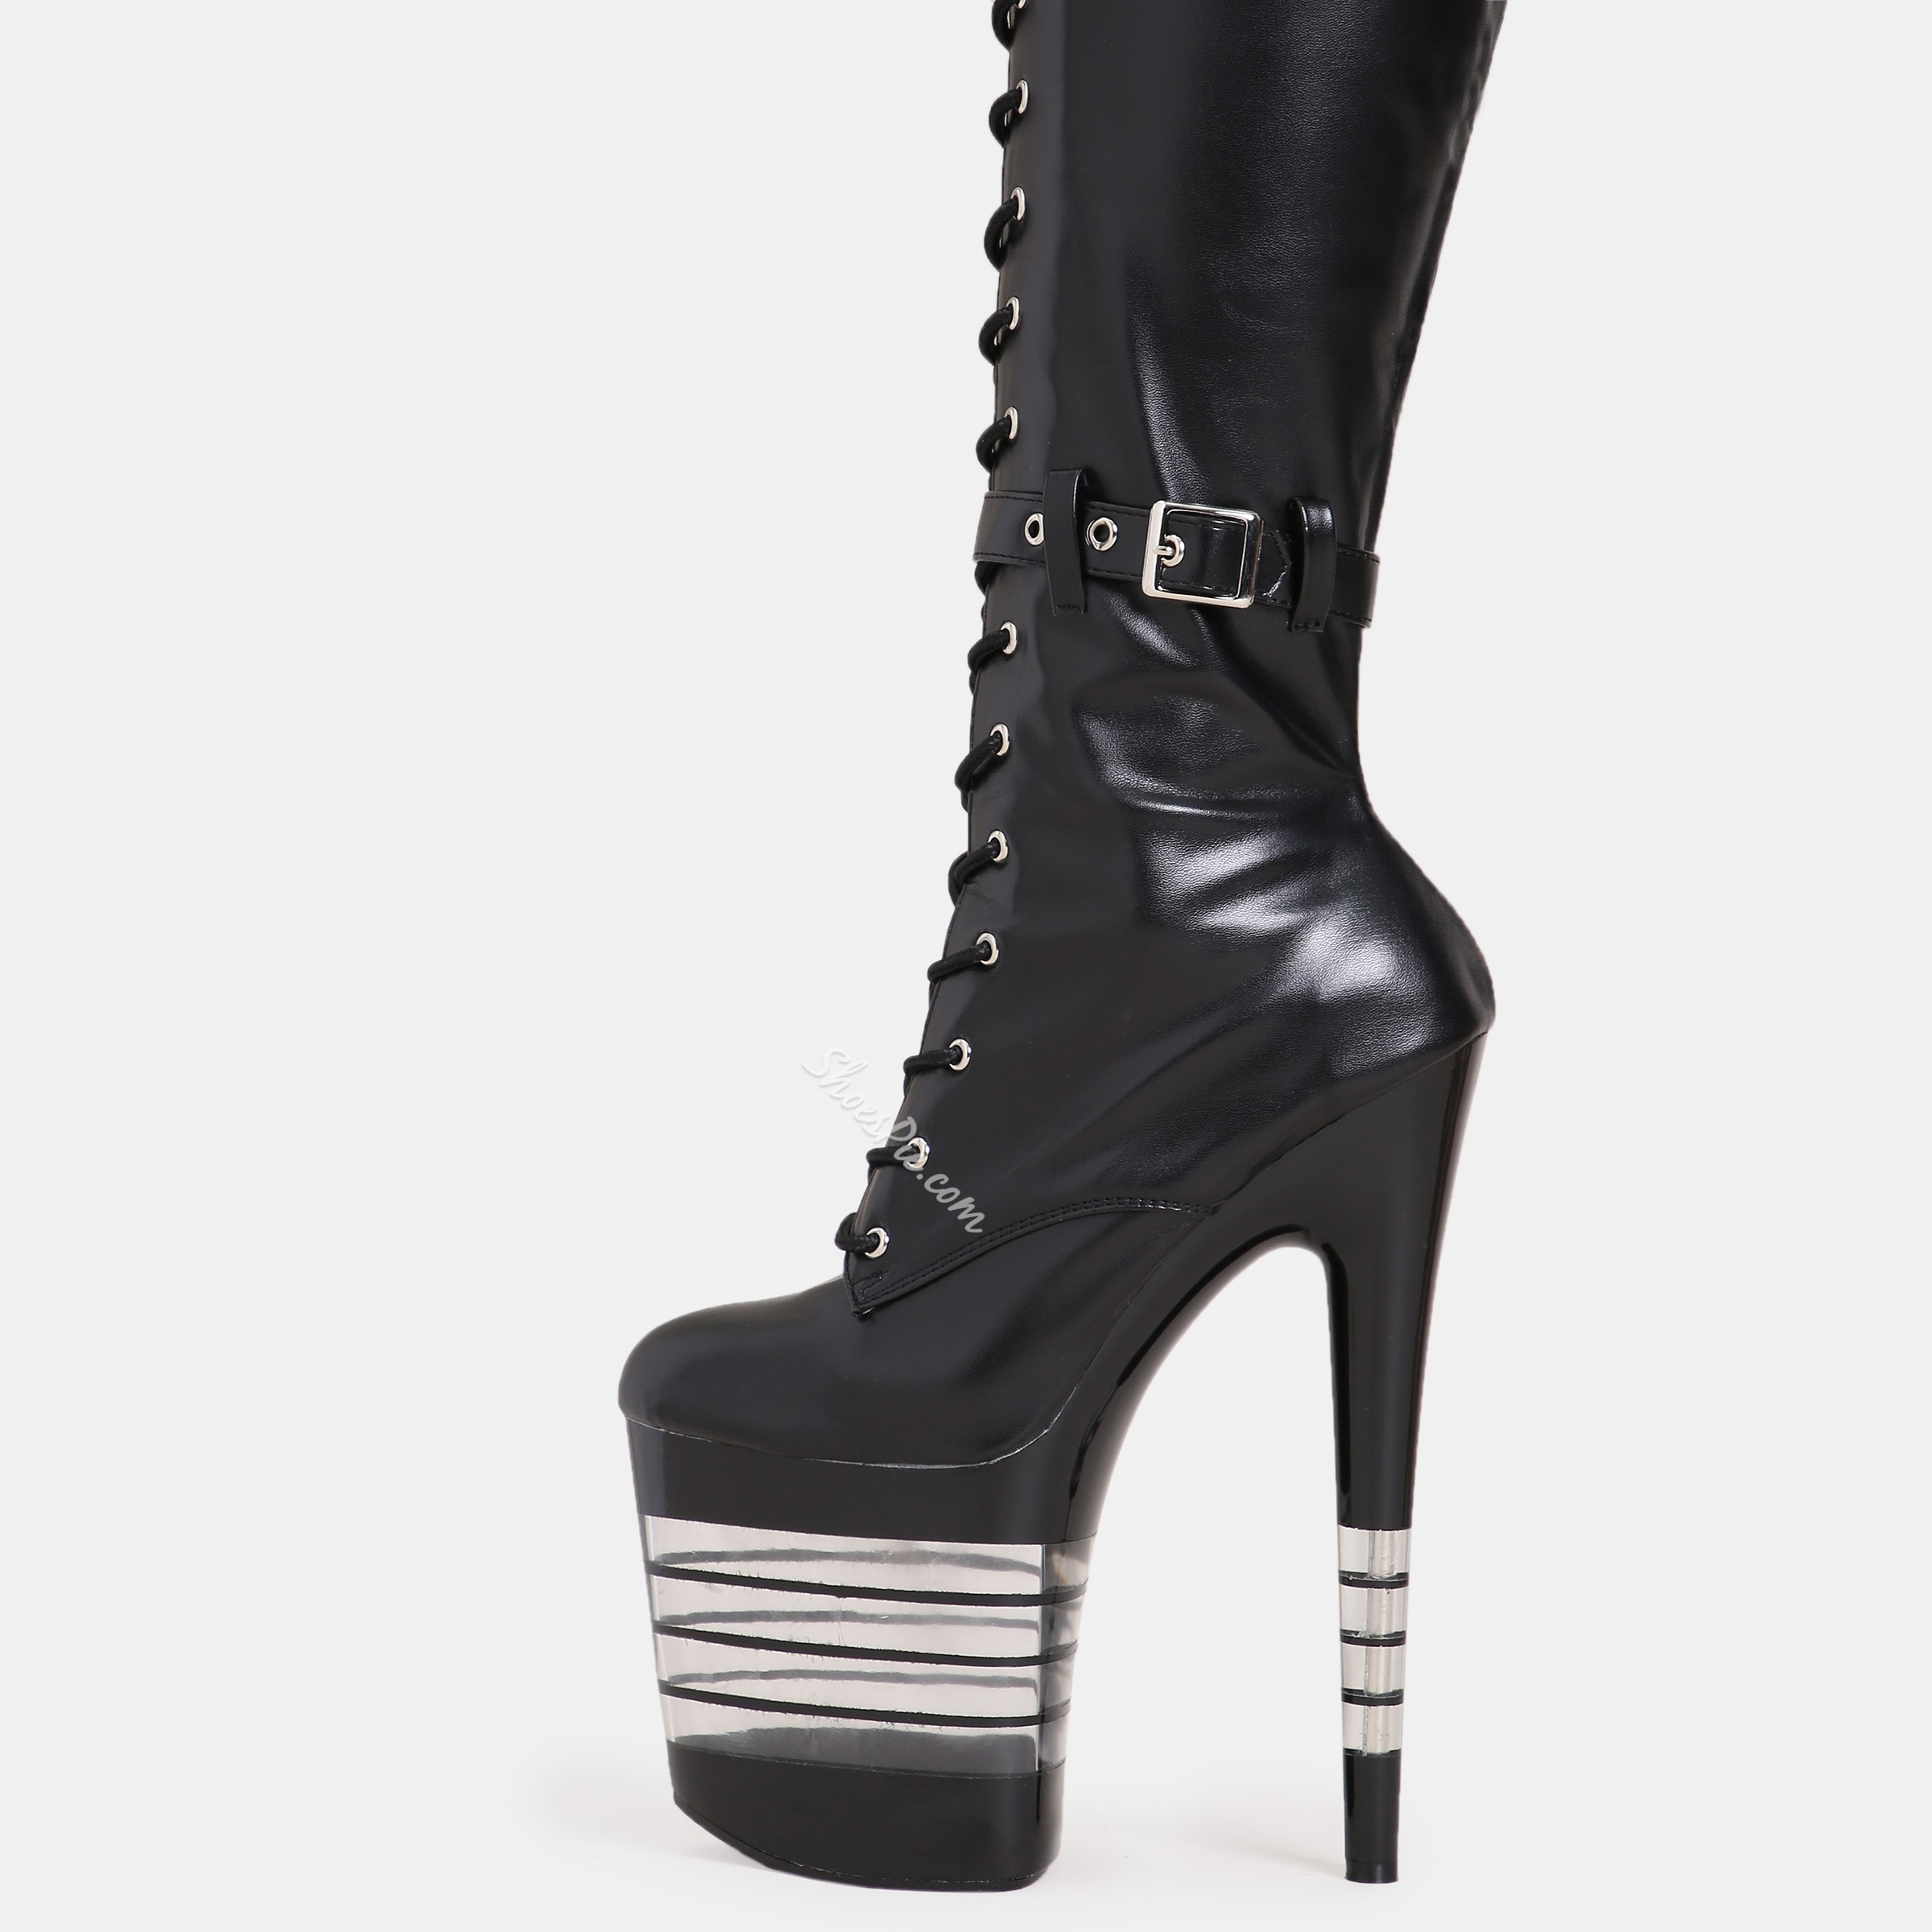 Shoespie Cross Strap Stiletto Heel Platform Buckle Knee High Boots